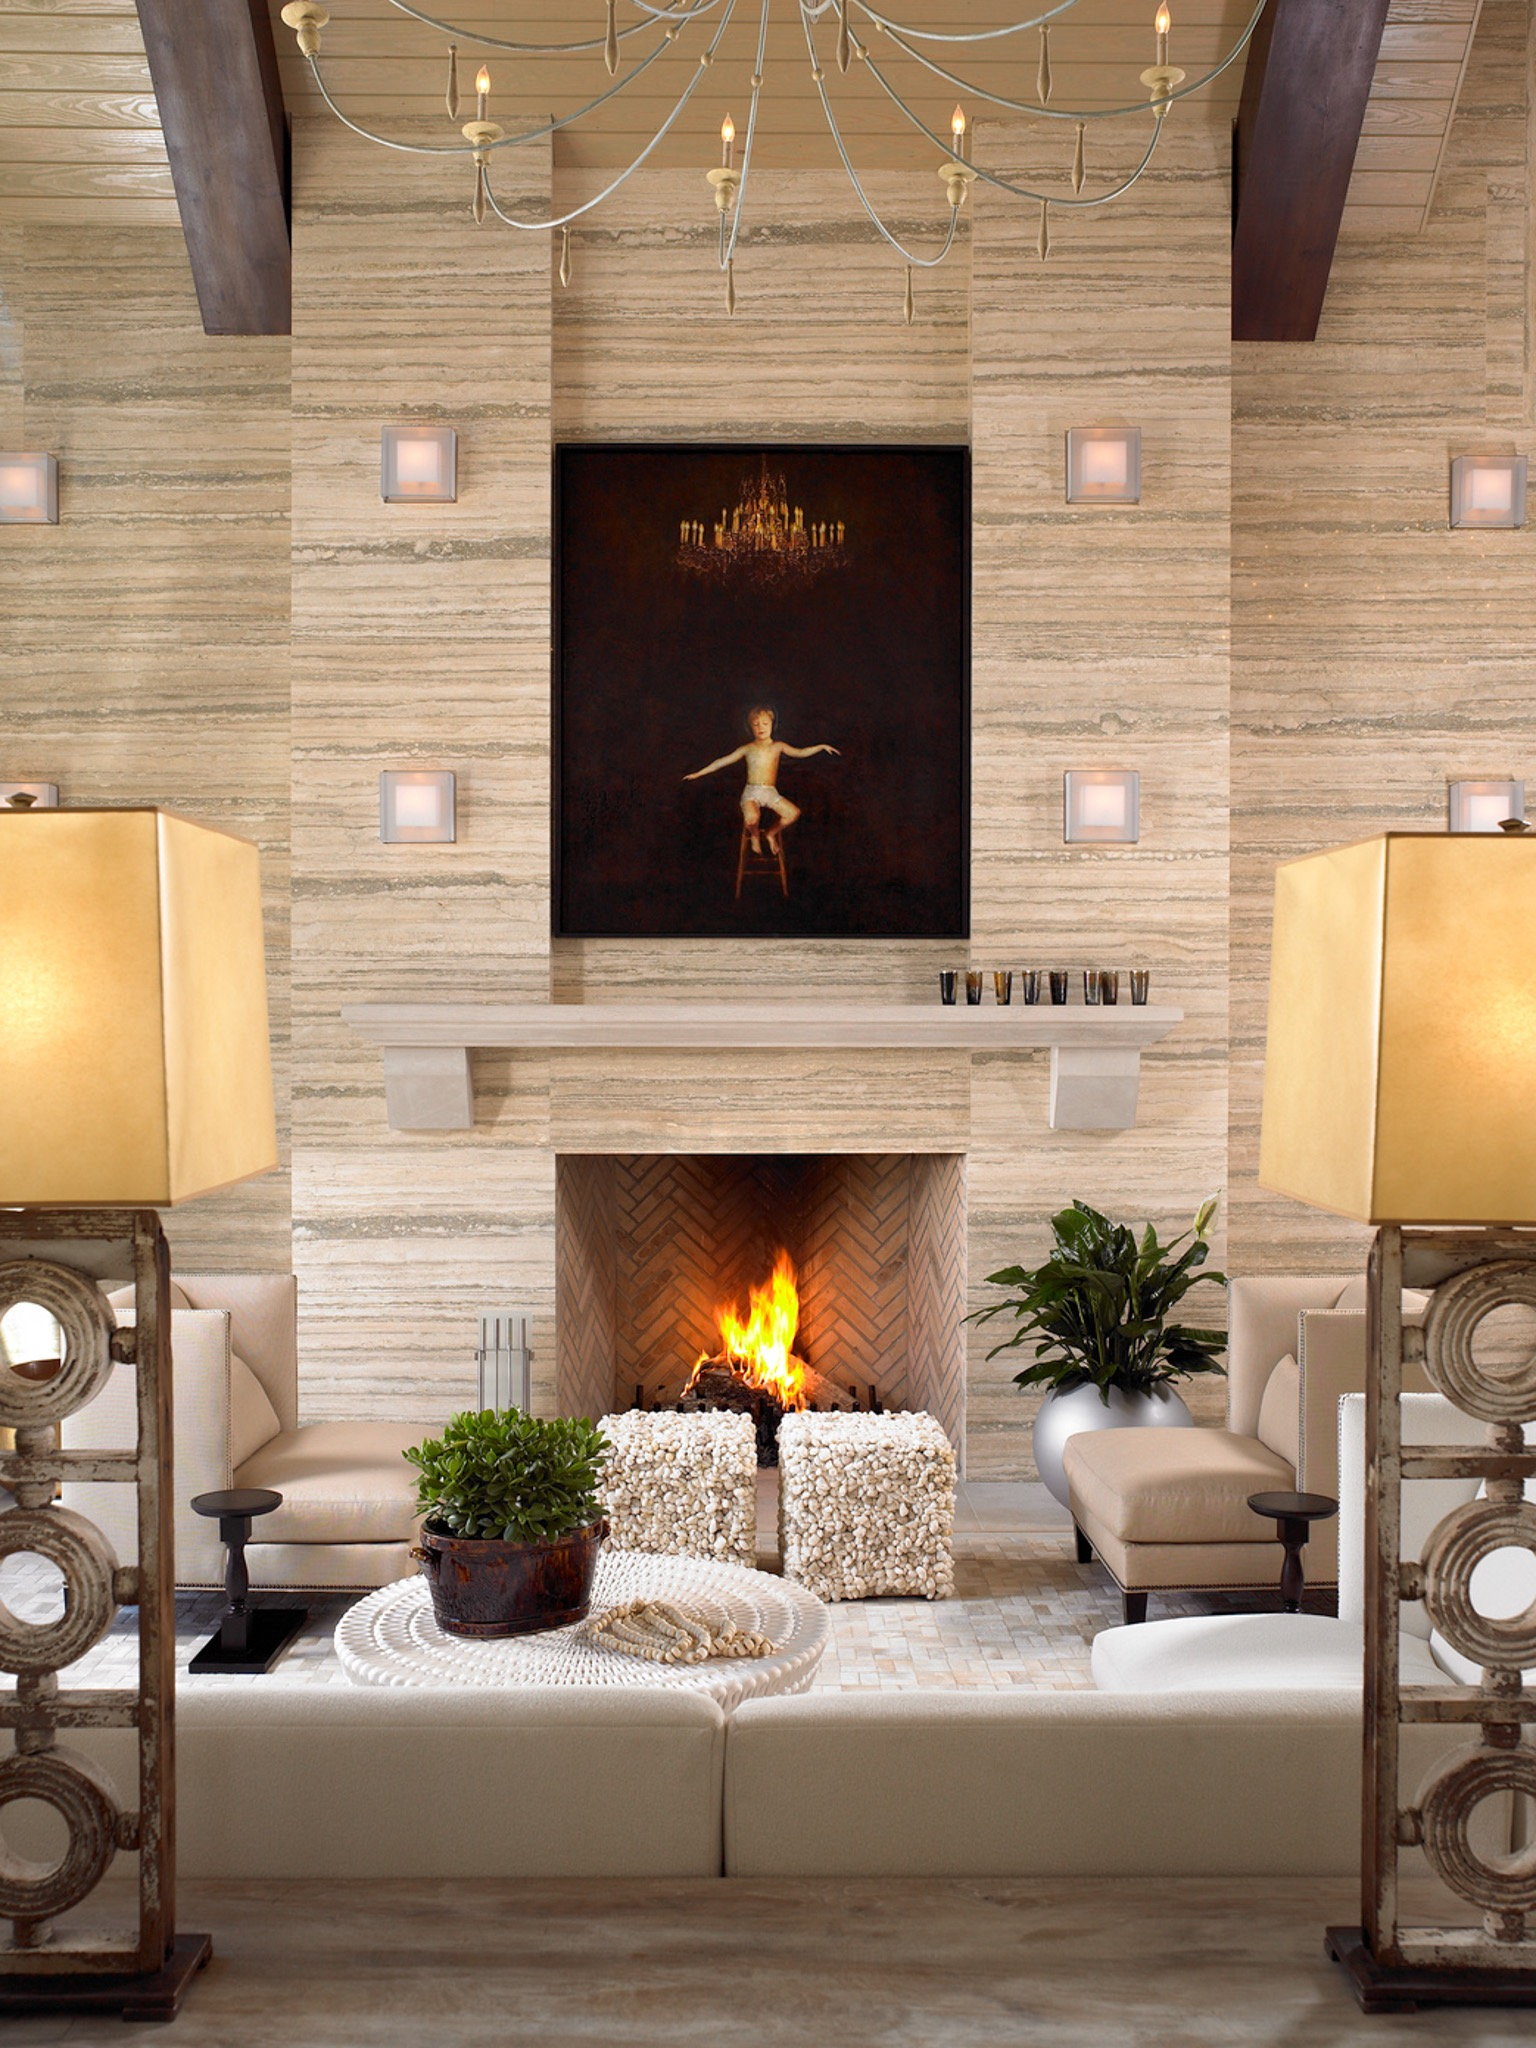 Travertine Accent Wall Decor For Contemporary Living Room (Image 27 of 30)